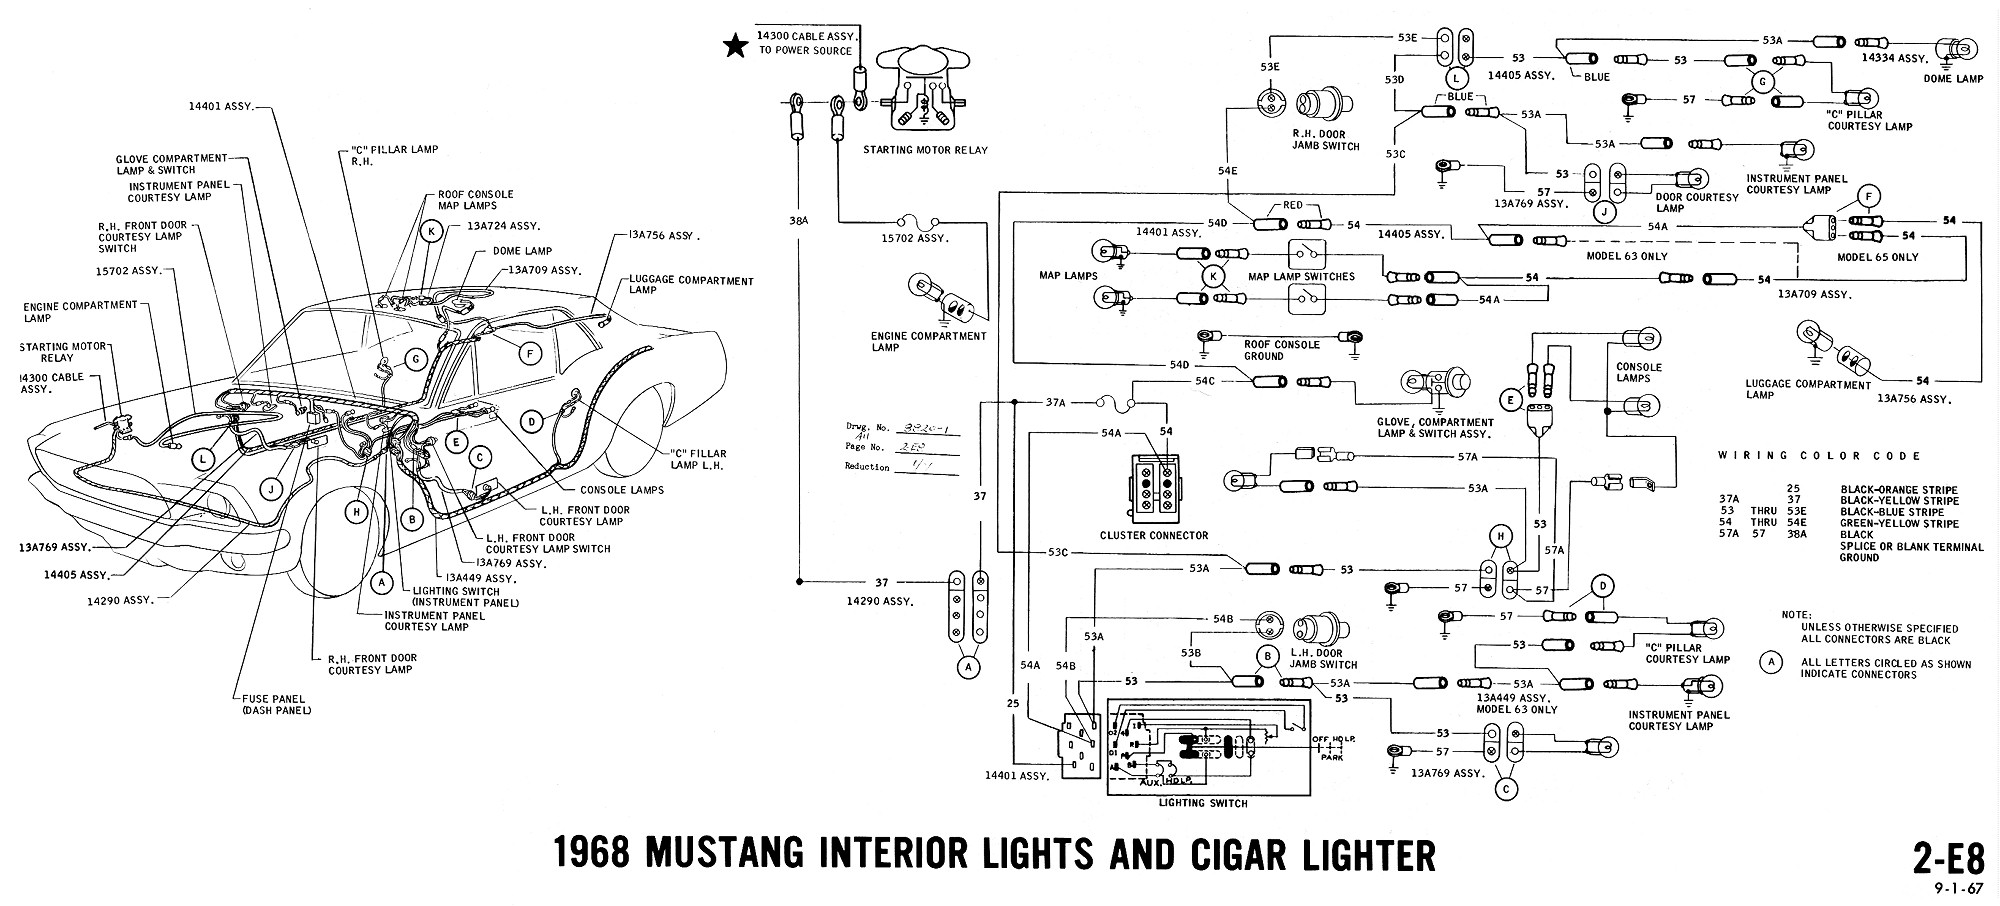 hight resolution of 1968 mustang transmission selector wiring diagram wiring diagram 68 mustang starter solenoid 68 mustang wiring harness